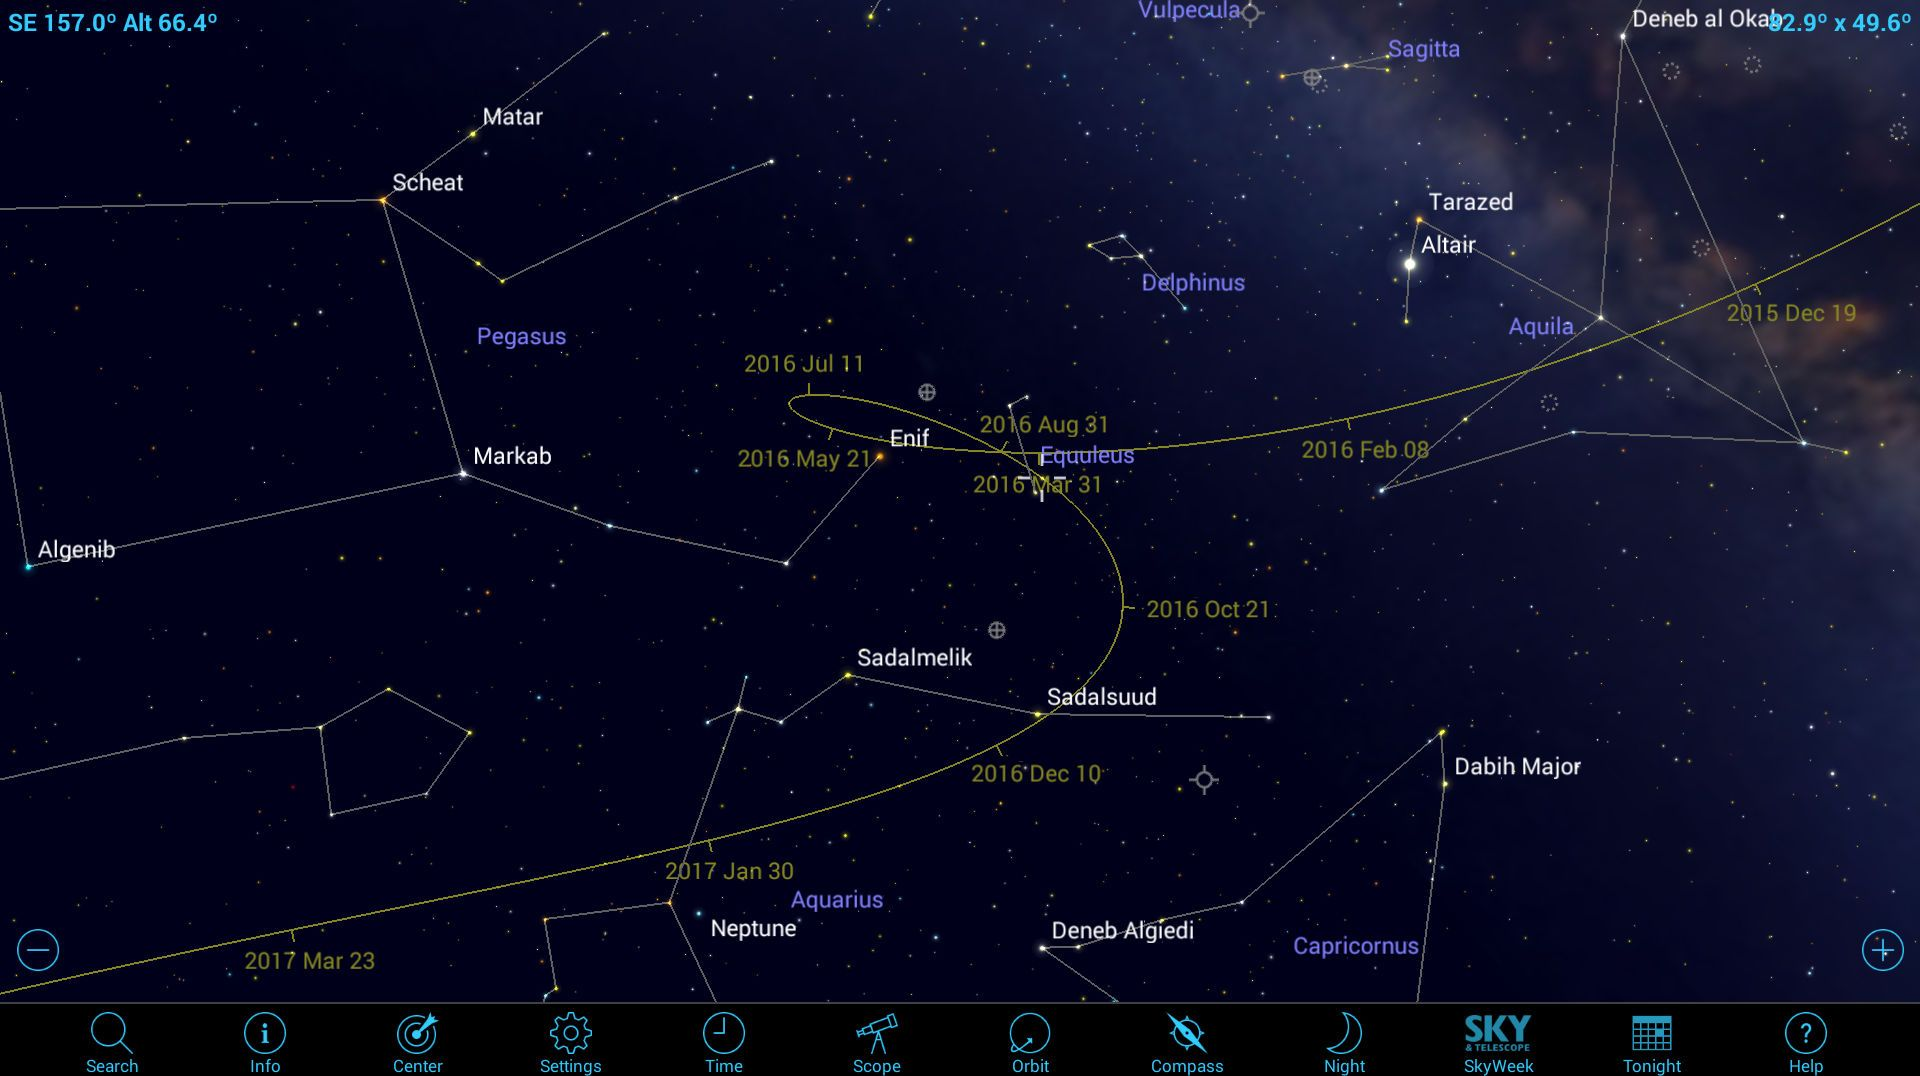 Here's how to track and spot asteroids using a mobile astronomy app.